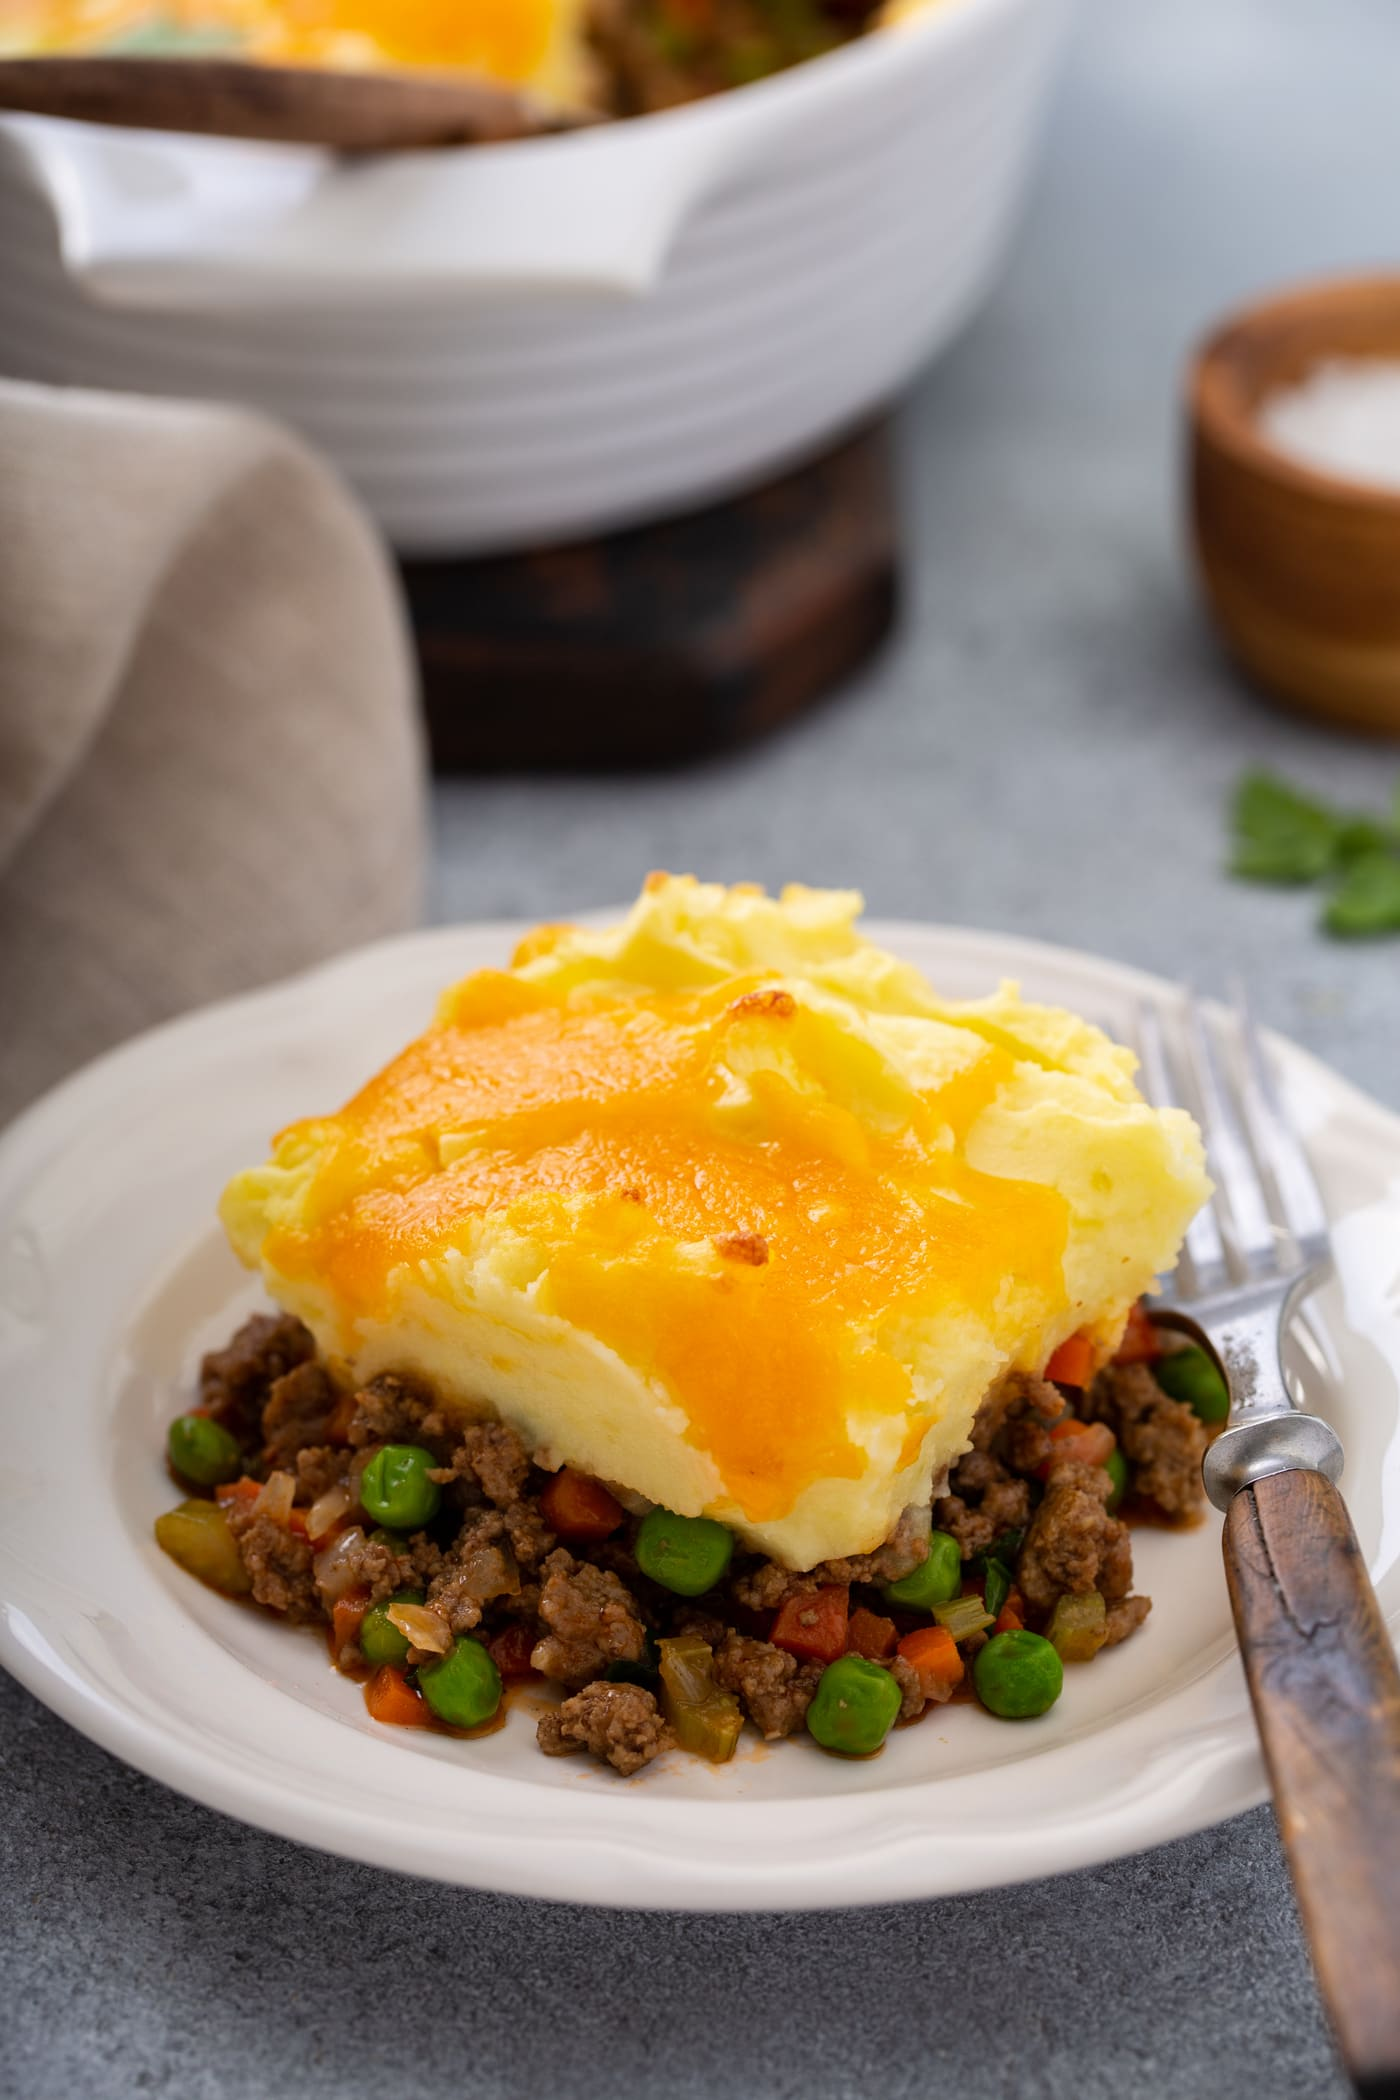 A serving of shepherd's pie on a white plate with a fork beside it. There is a napkin and a casserole dish in the background.